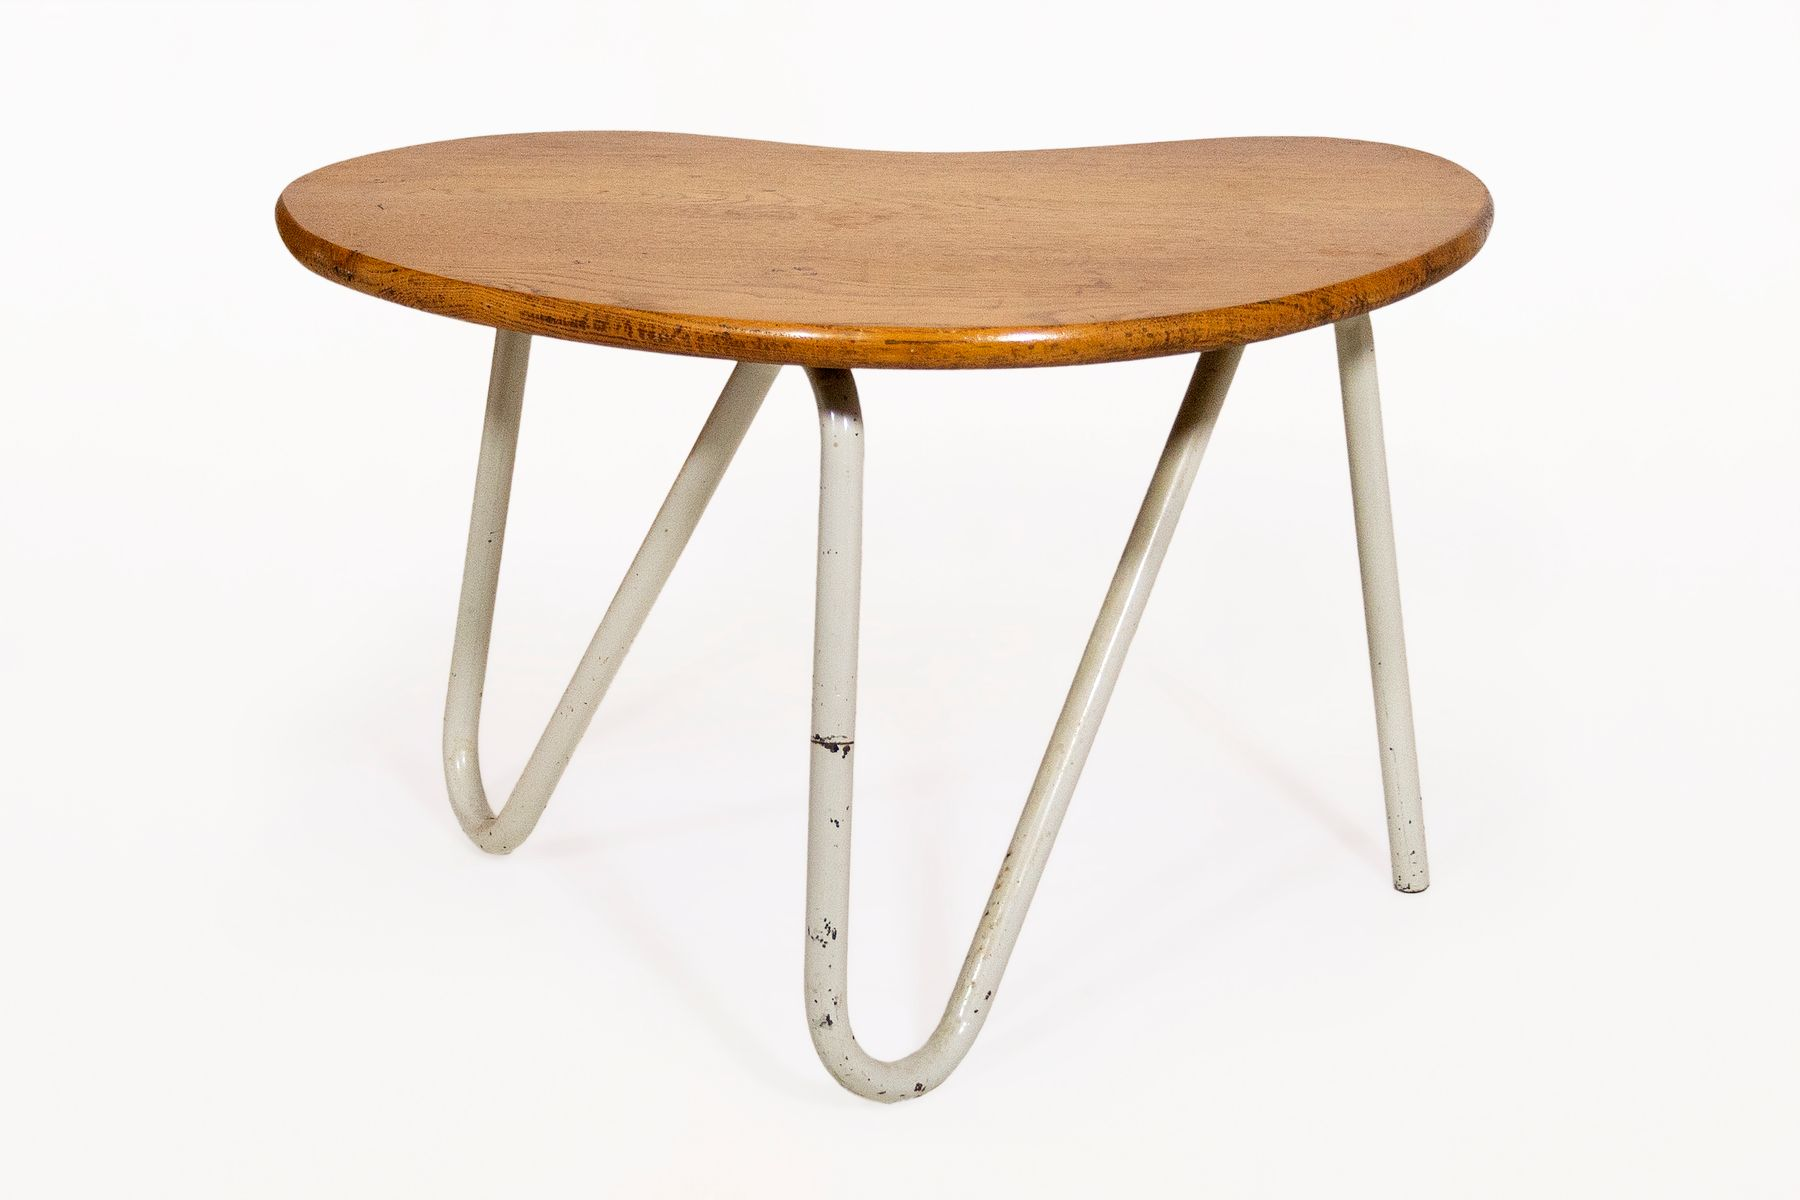 Vintage Flying Side Table by Pierre Guariche for Steiner 1960s